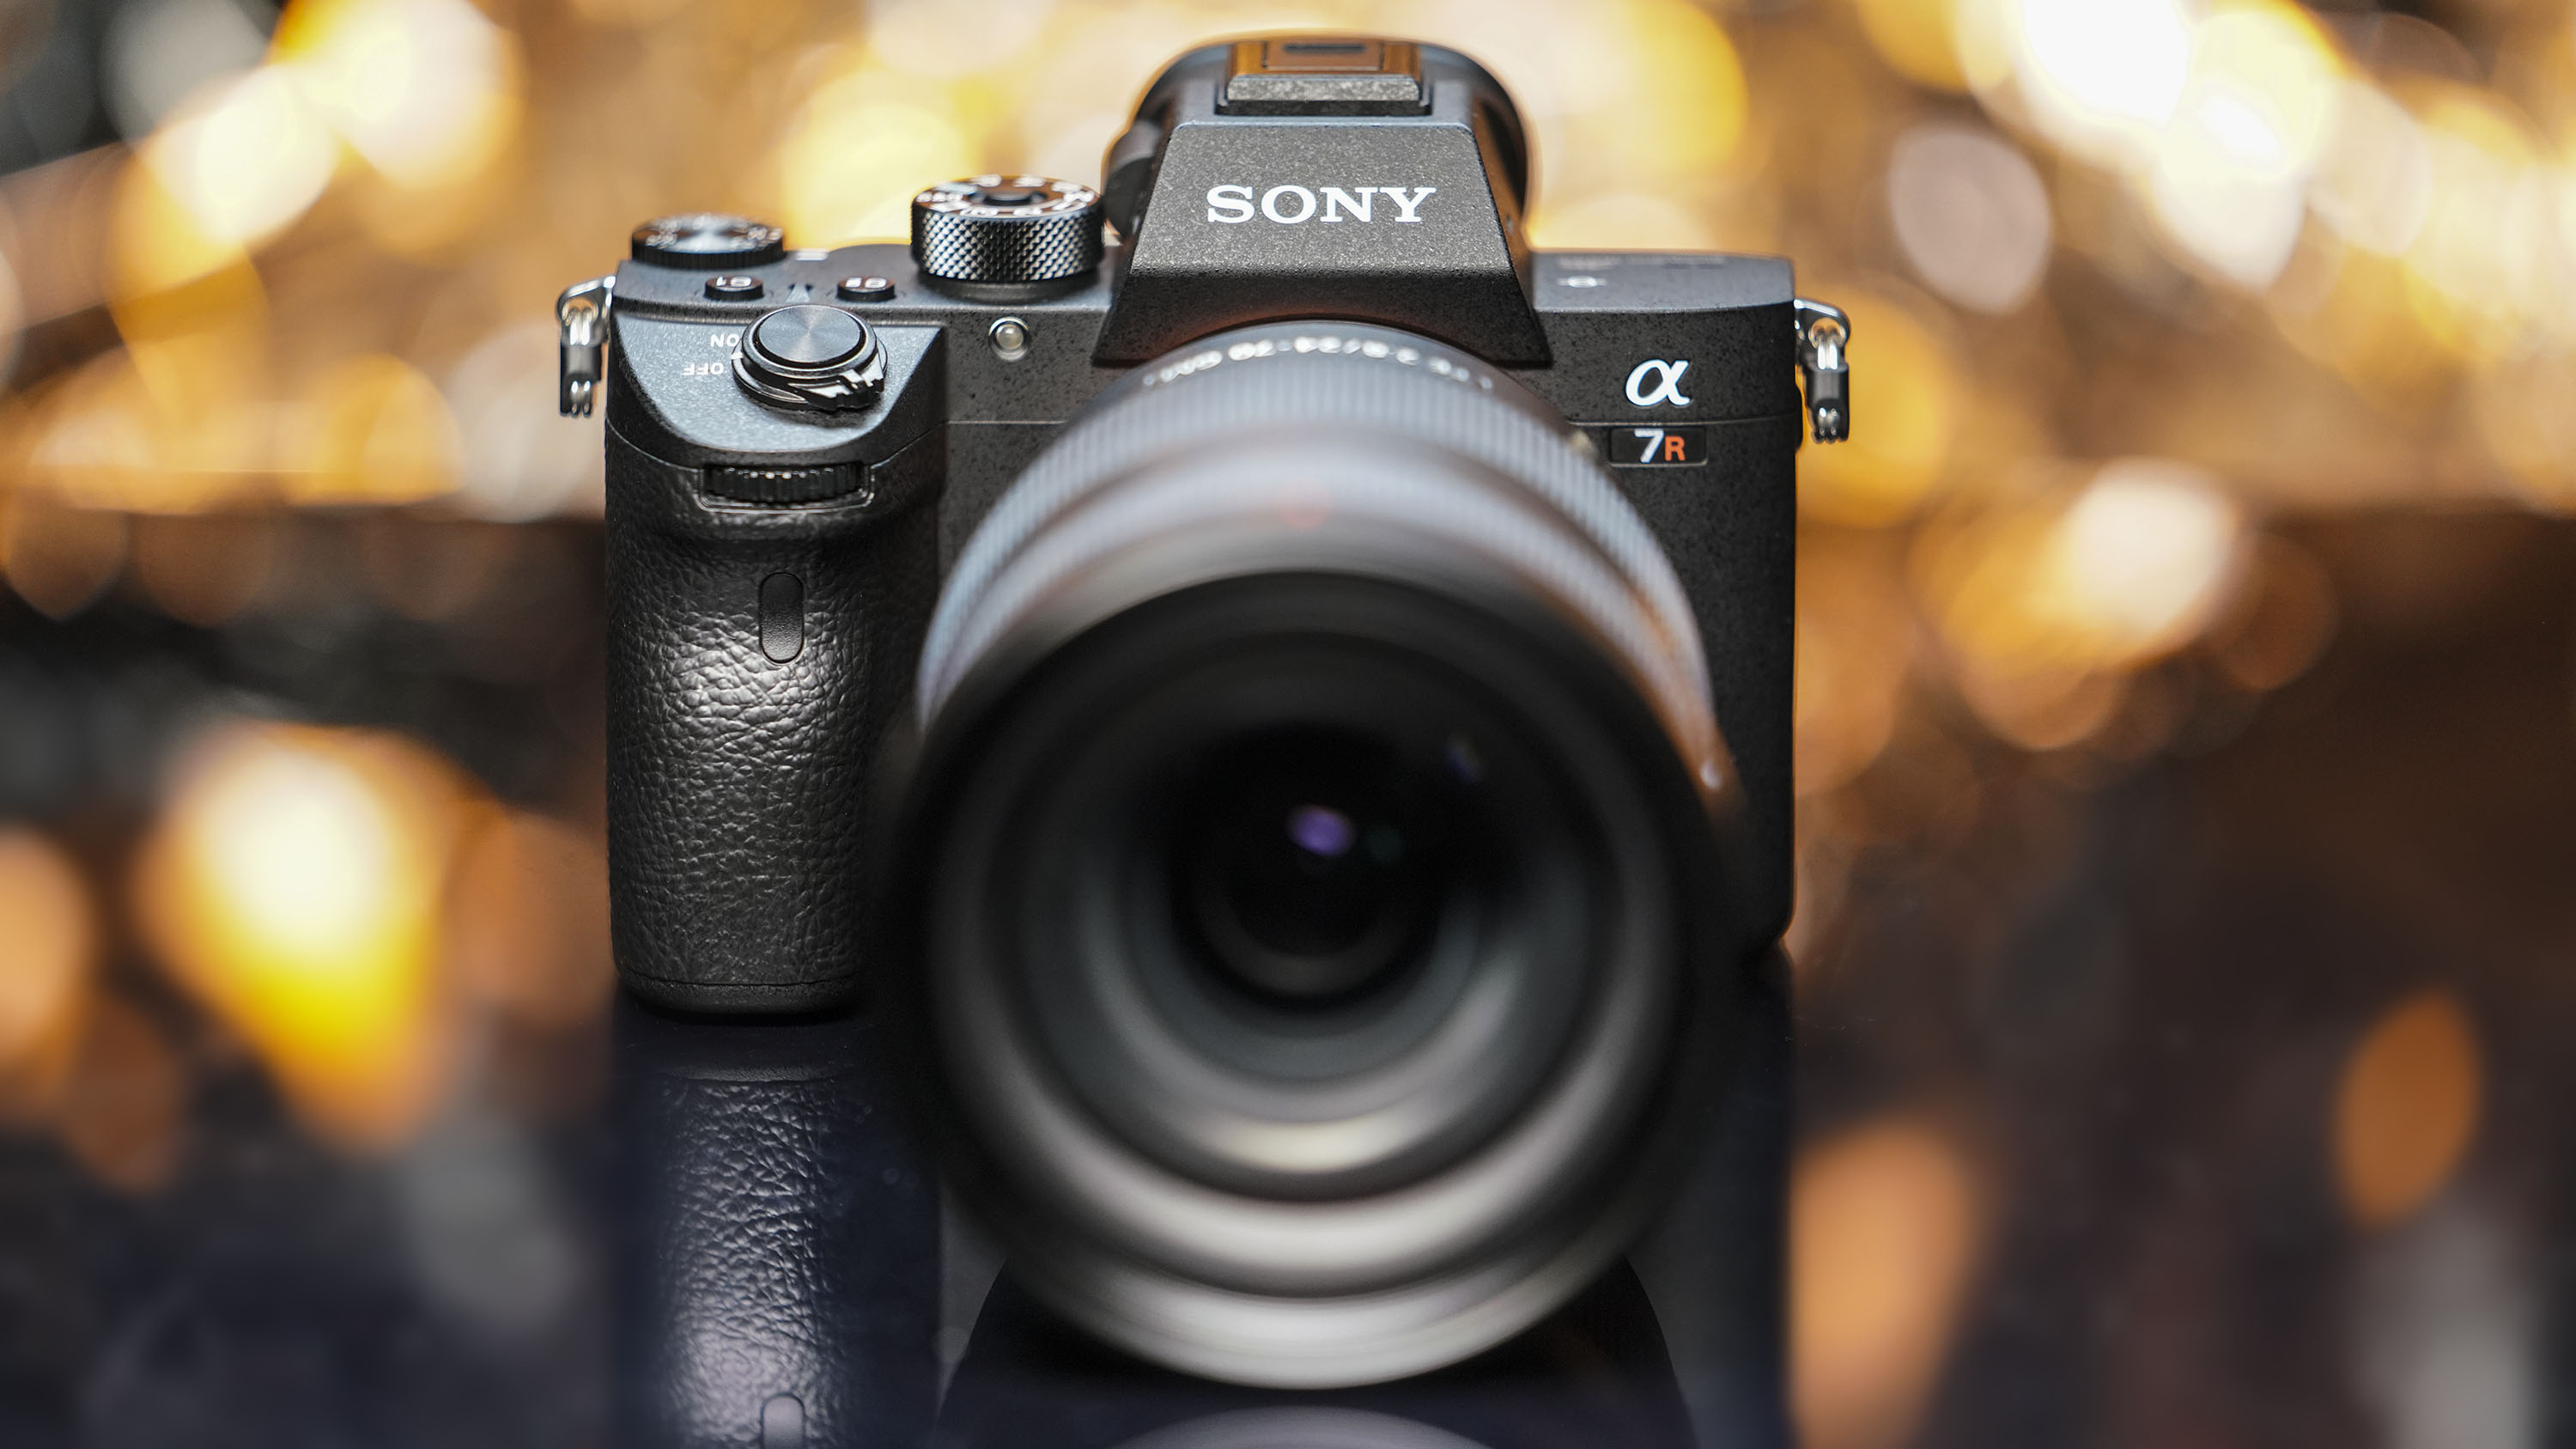 The best Sony A7R III deals on Amazon Prime Day 2018